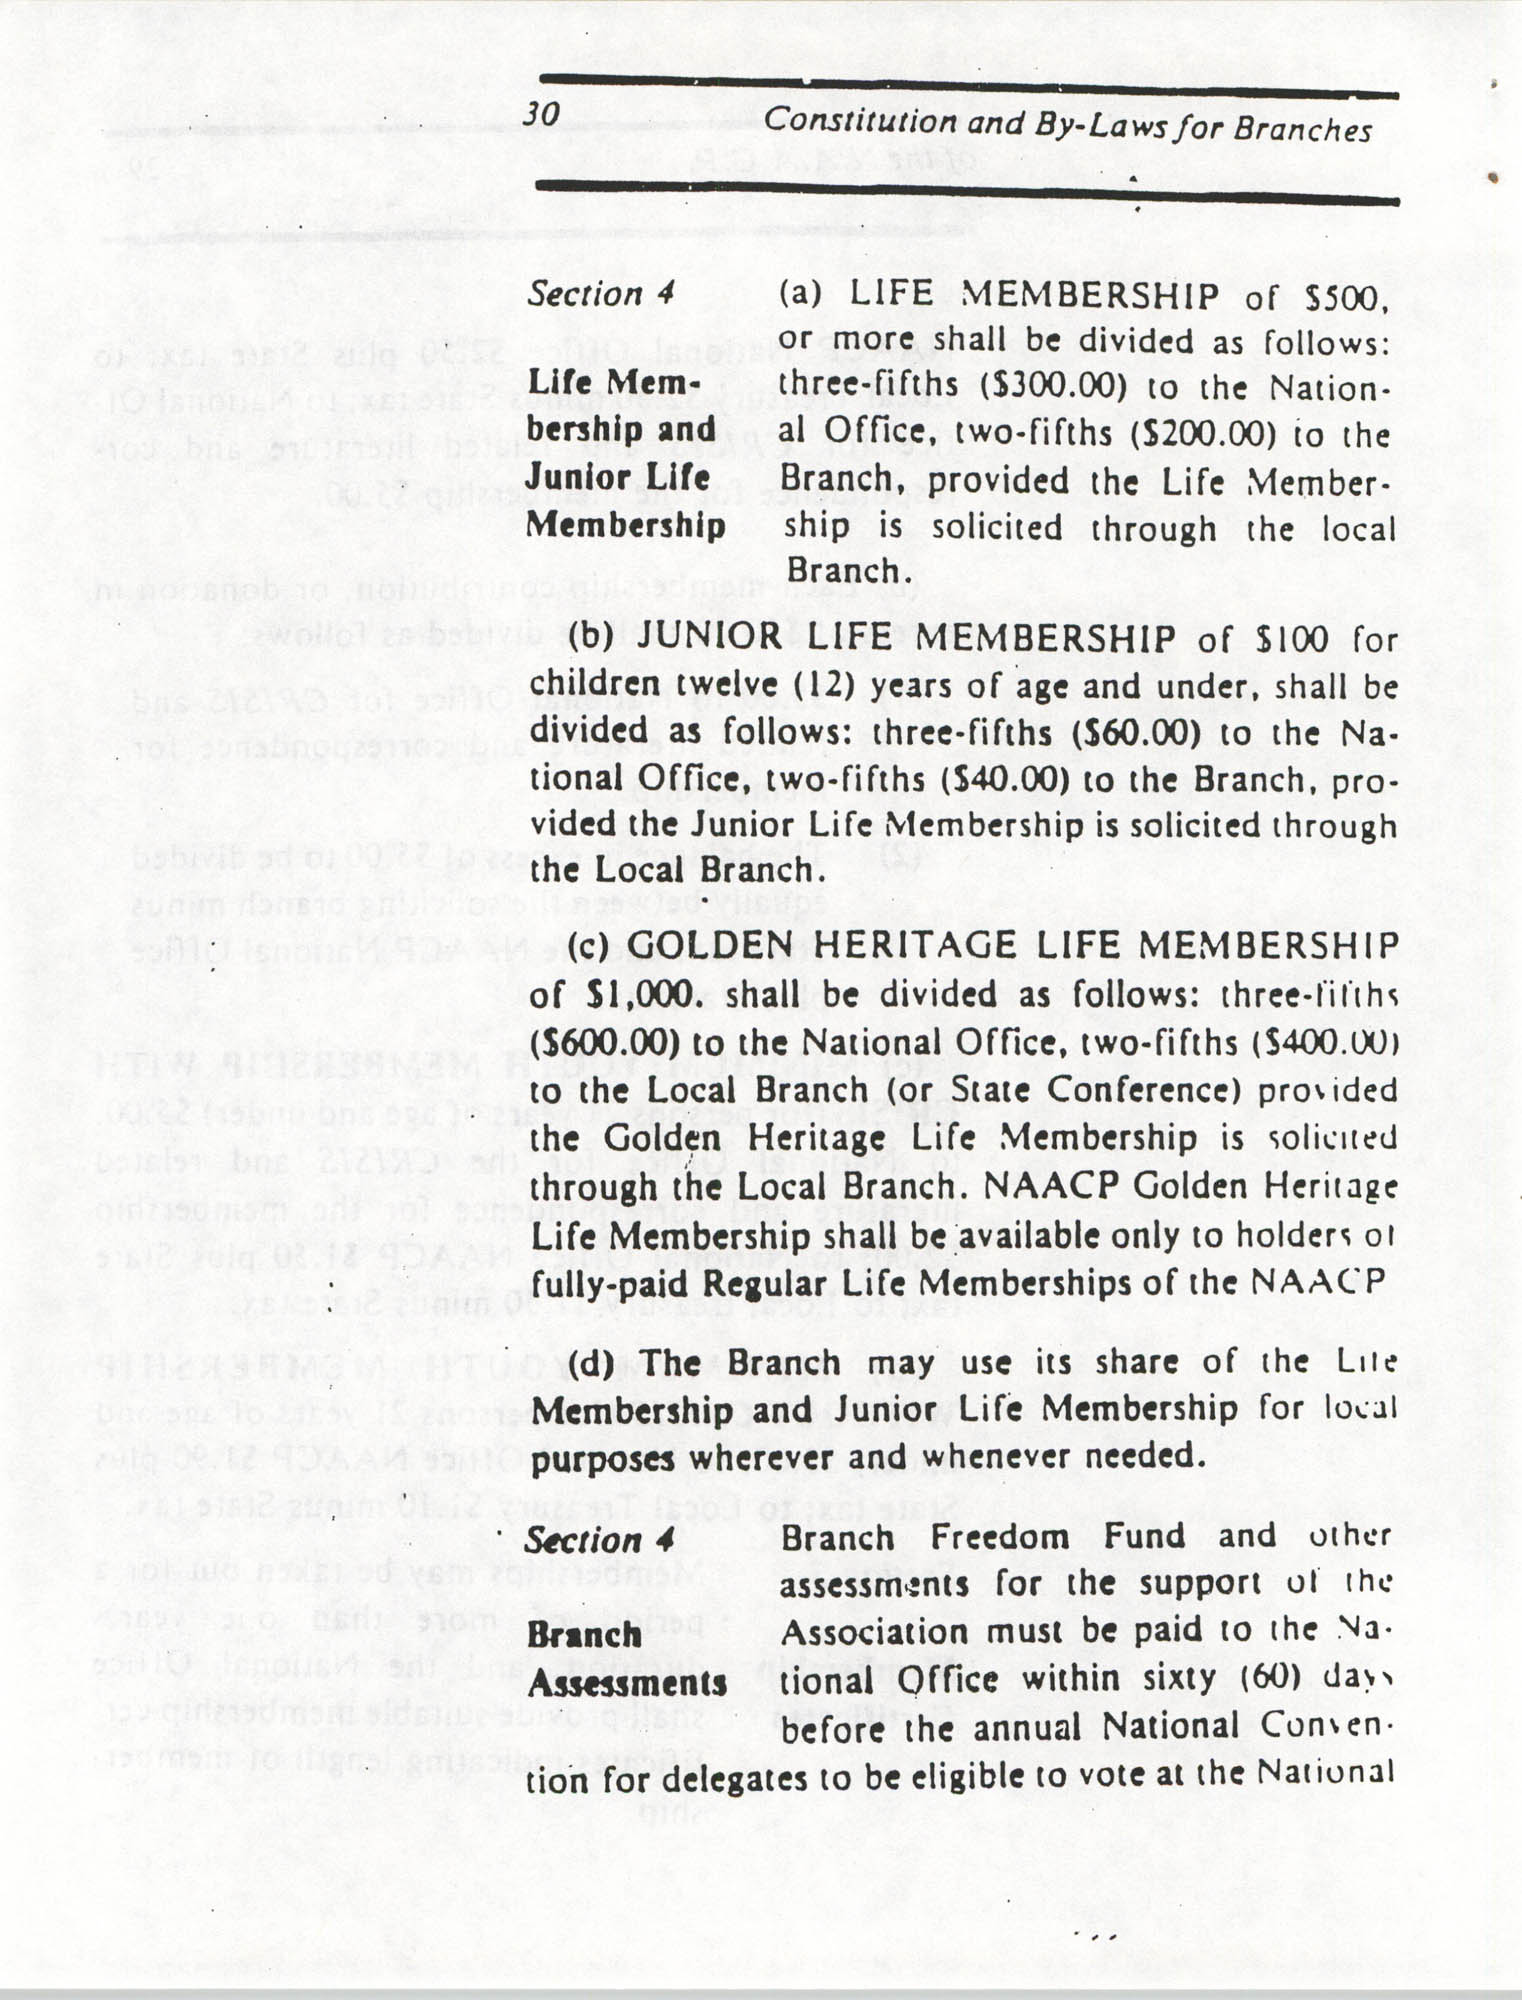 Constitution and By-Laws for Branches of the NAACP, March 1992, Page 30